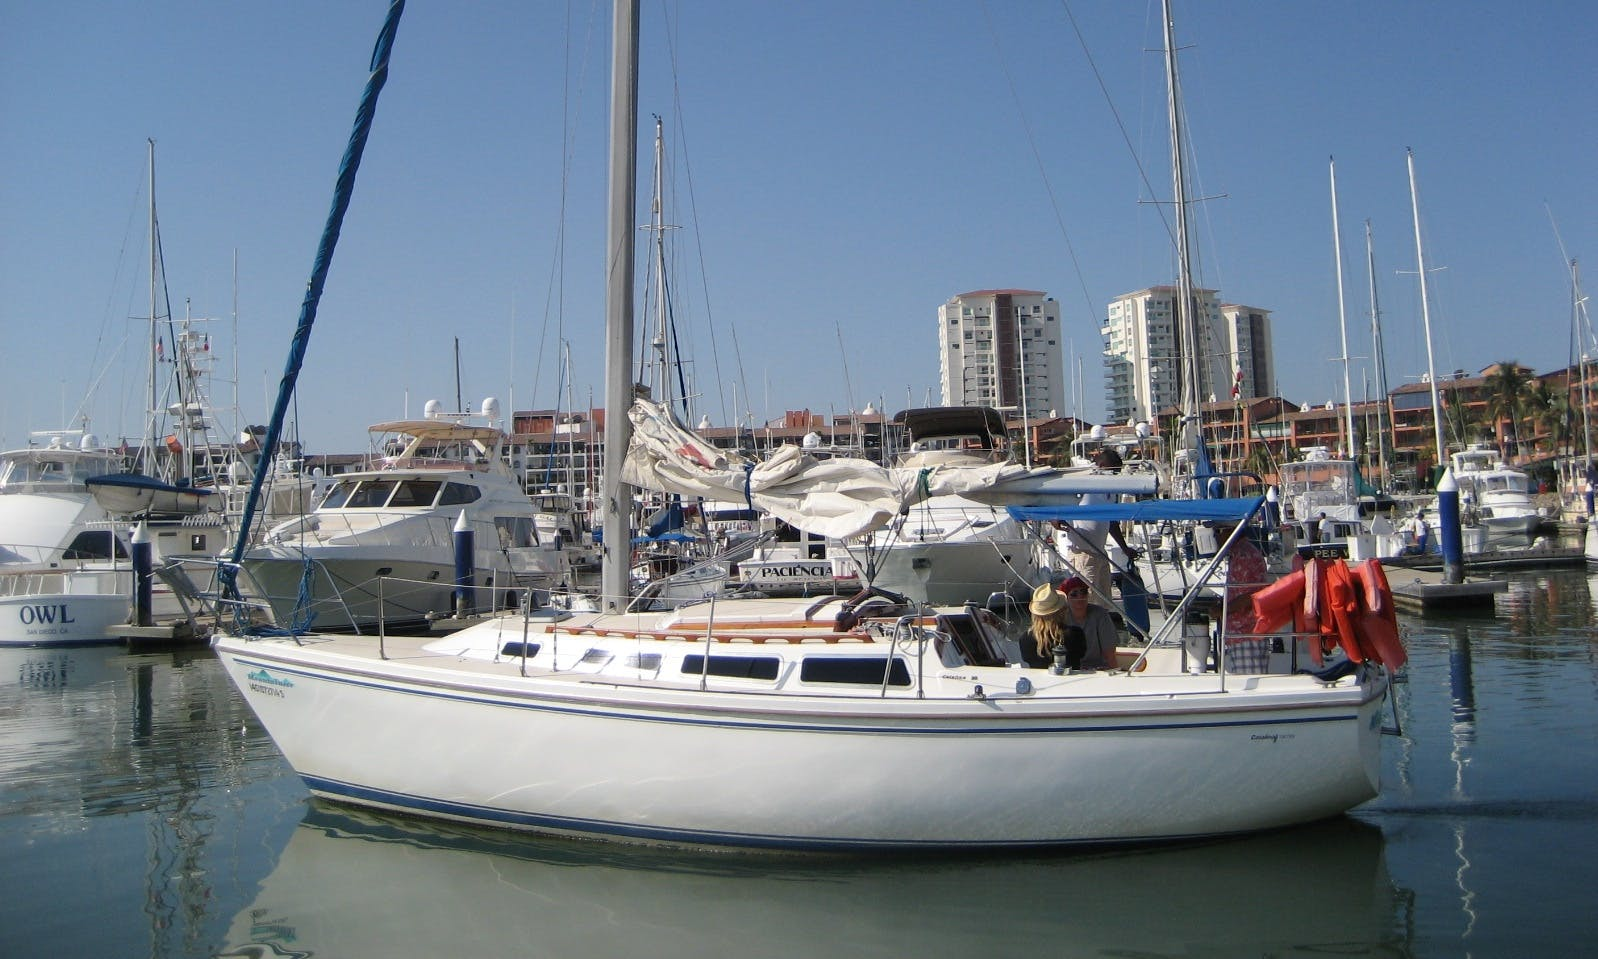 Private Crewed Sailing Charter On 30' Catalina Sailboat In Puerto Vallarta, Mexico